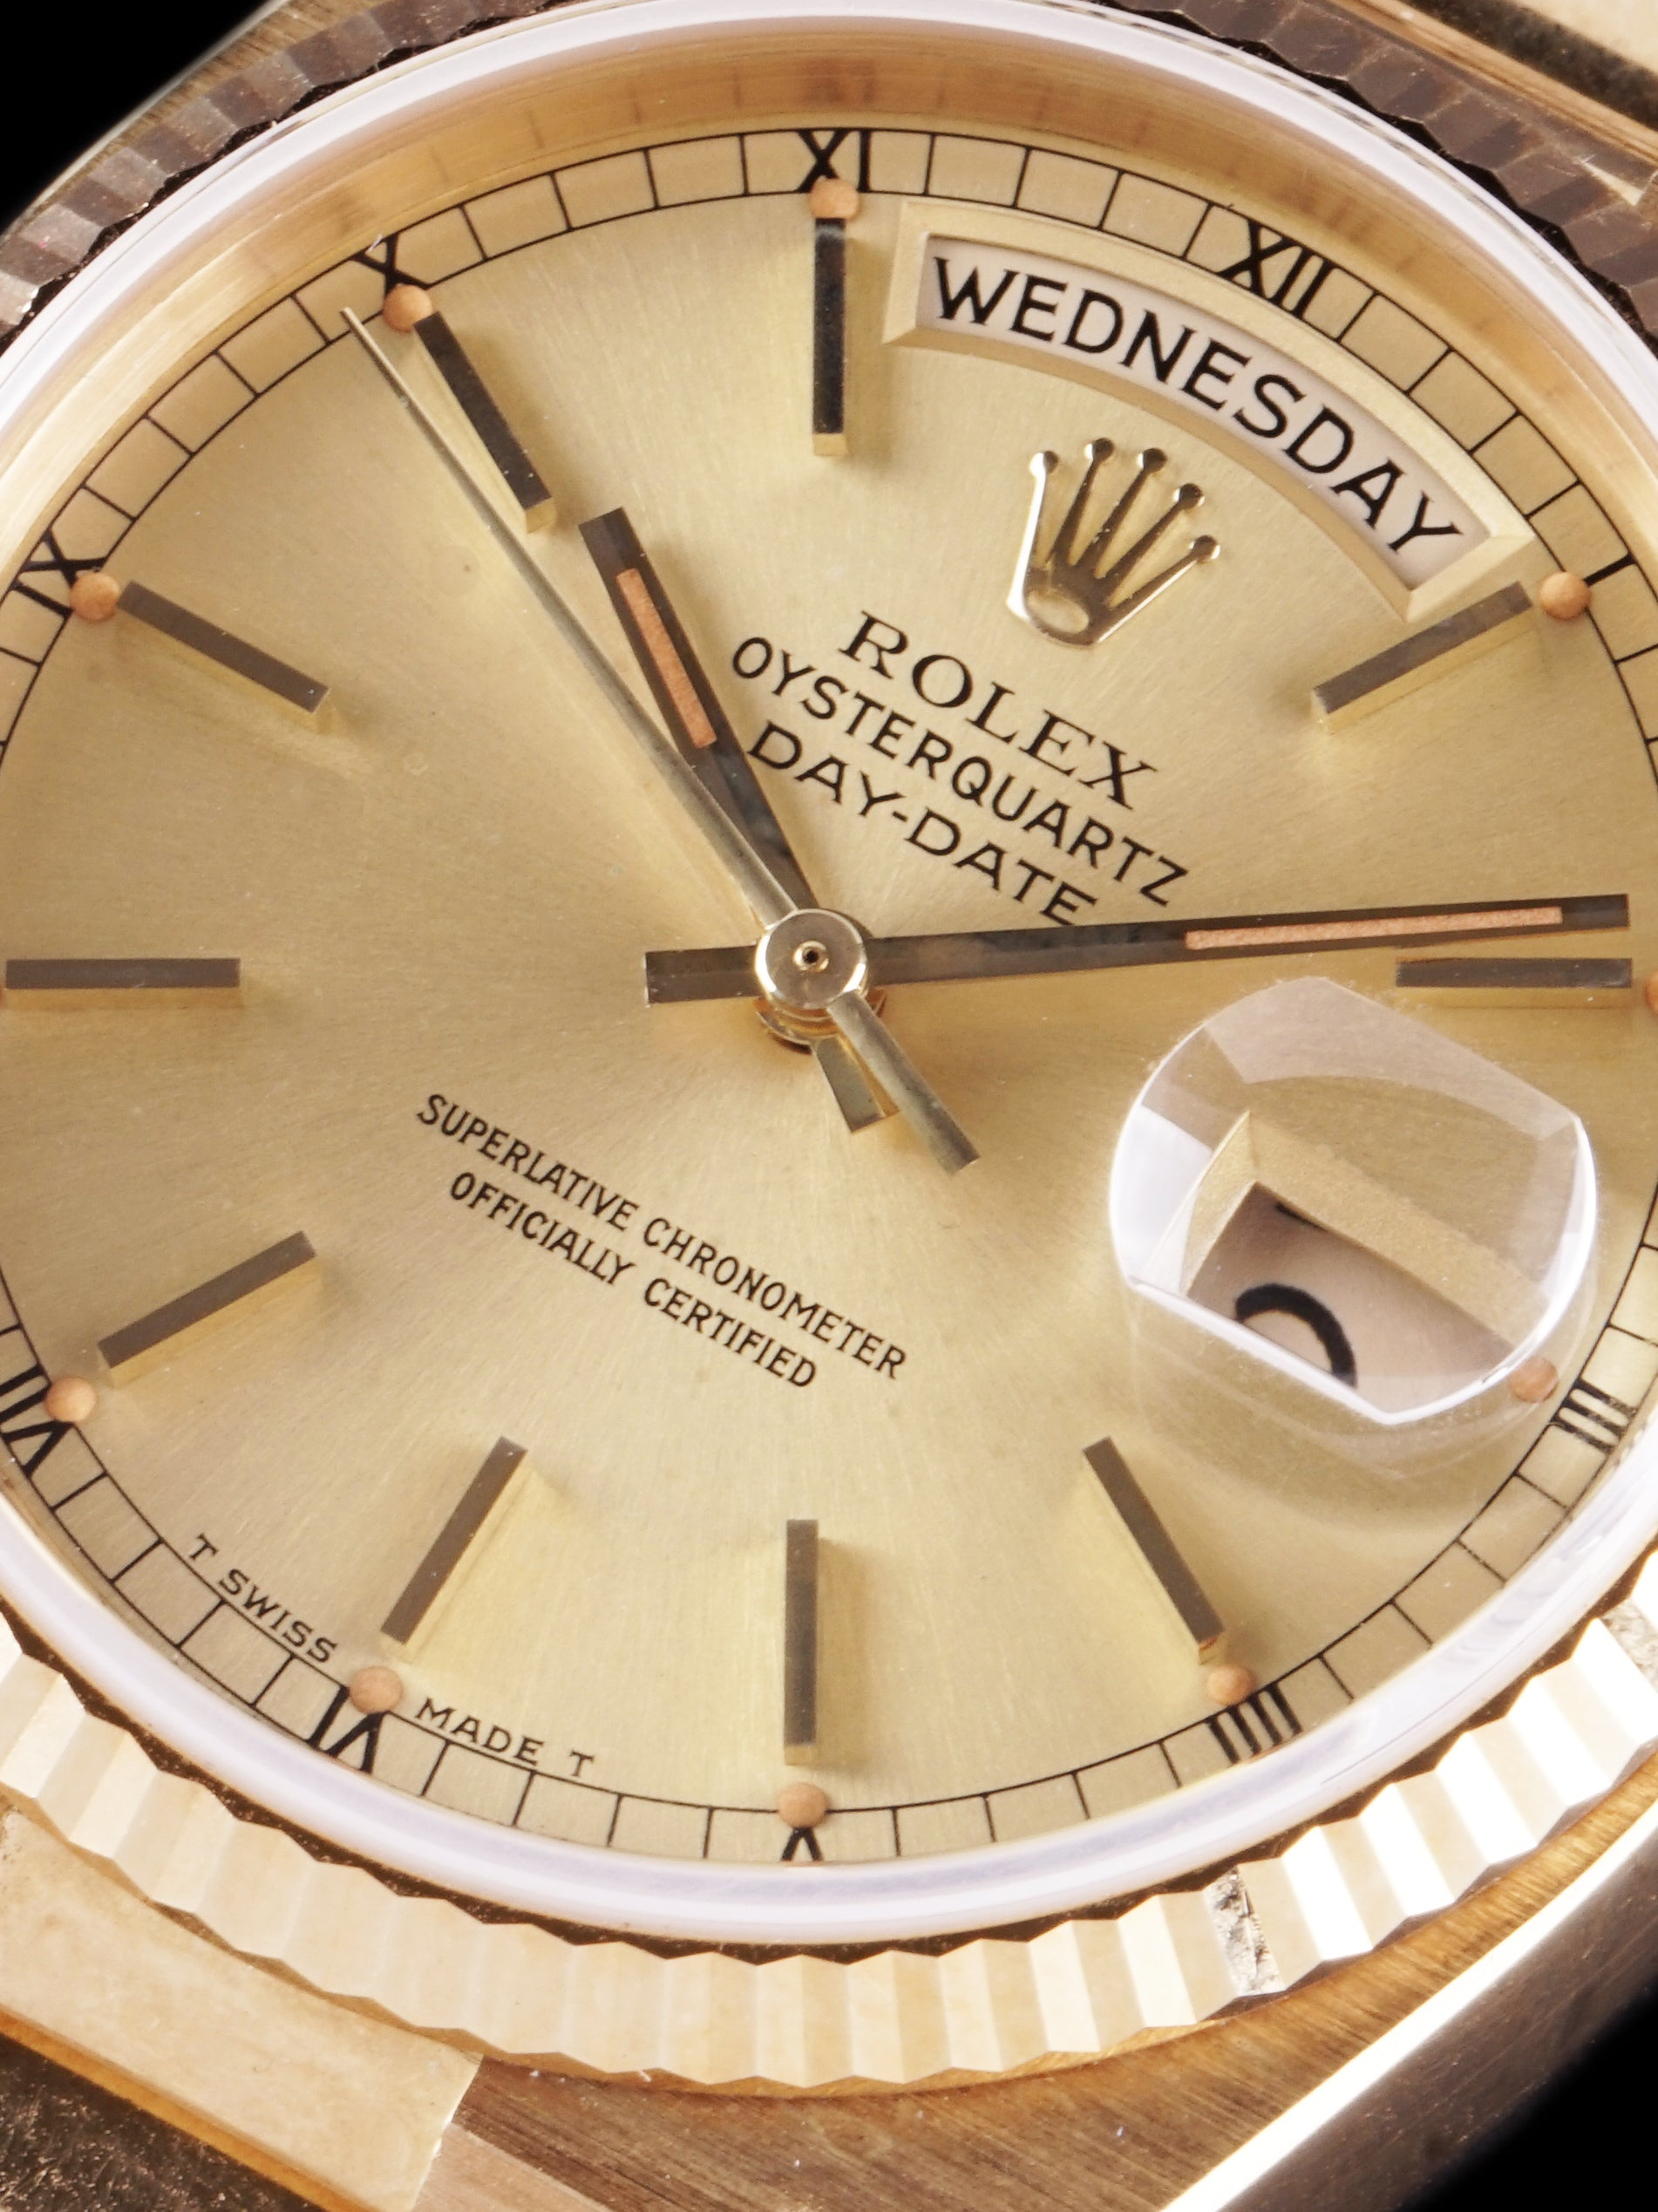 *Unpolished* 1984 Rolex Oysterquartz Day-Date (Ref. 19018) W/ Guarantee Paper